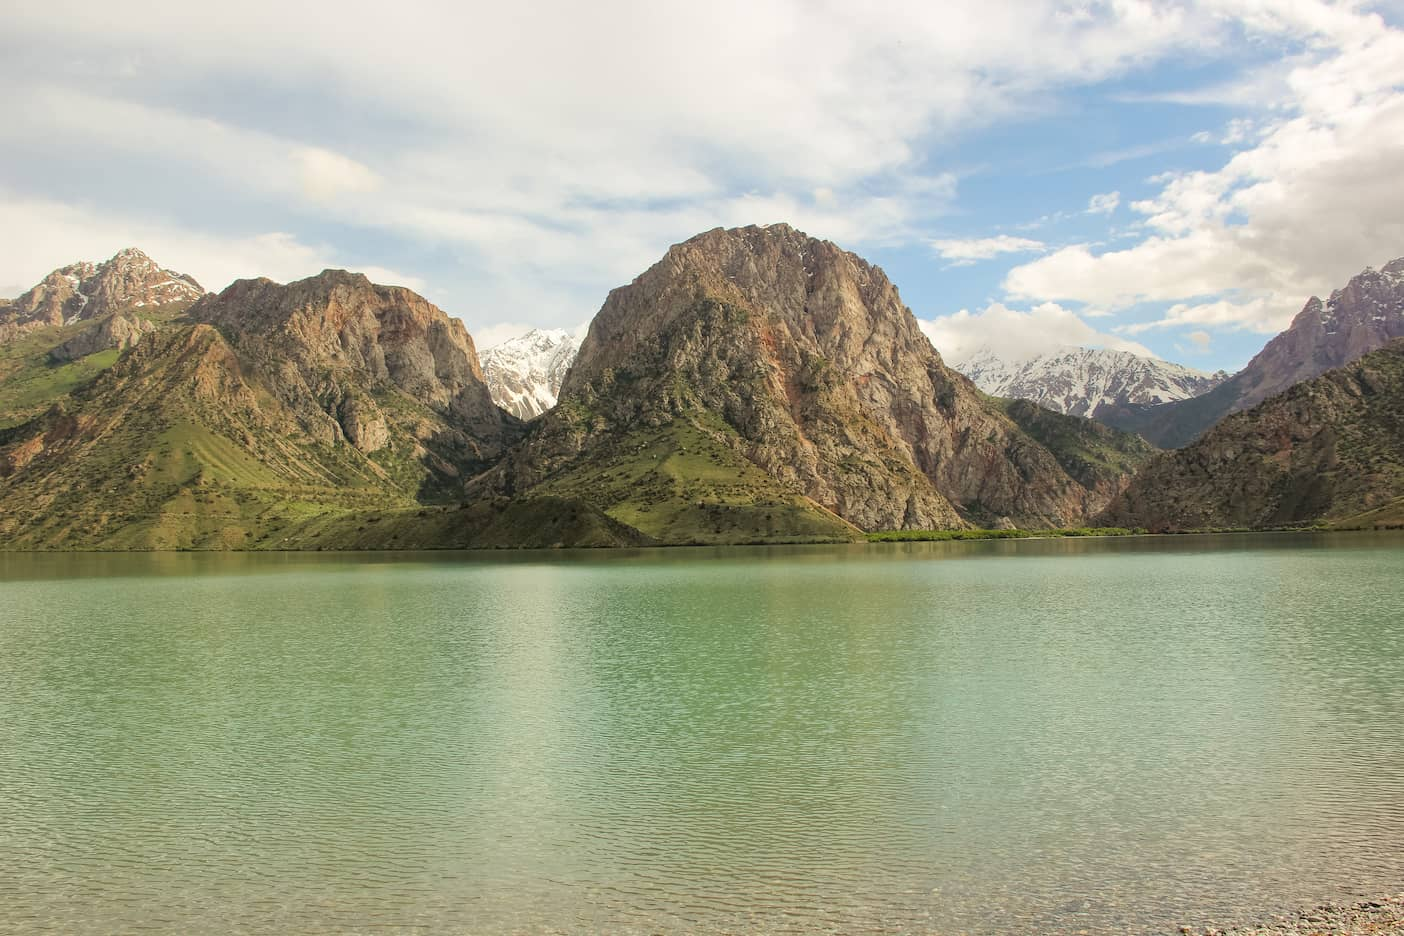 Stunning mountains surrounding the emerald green Iskanderkul Lake in Tajikistan